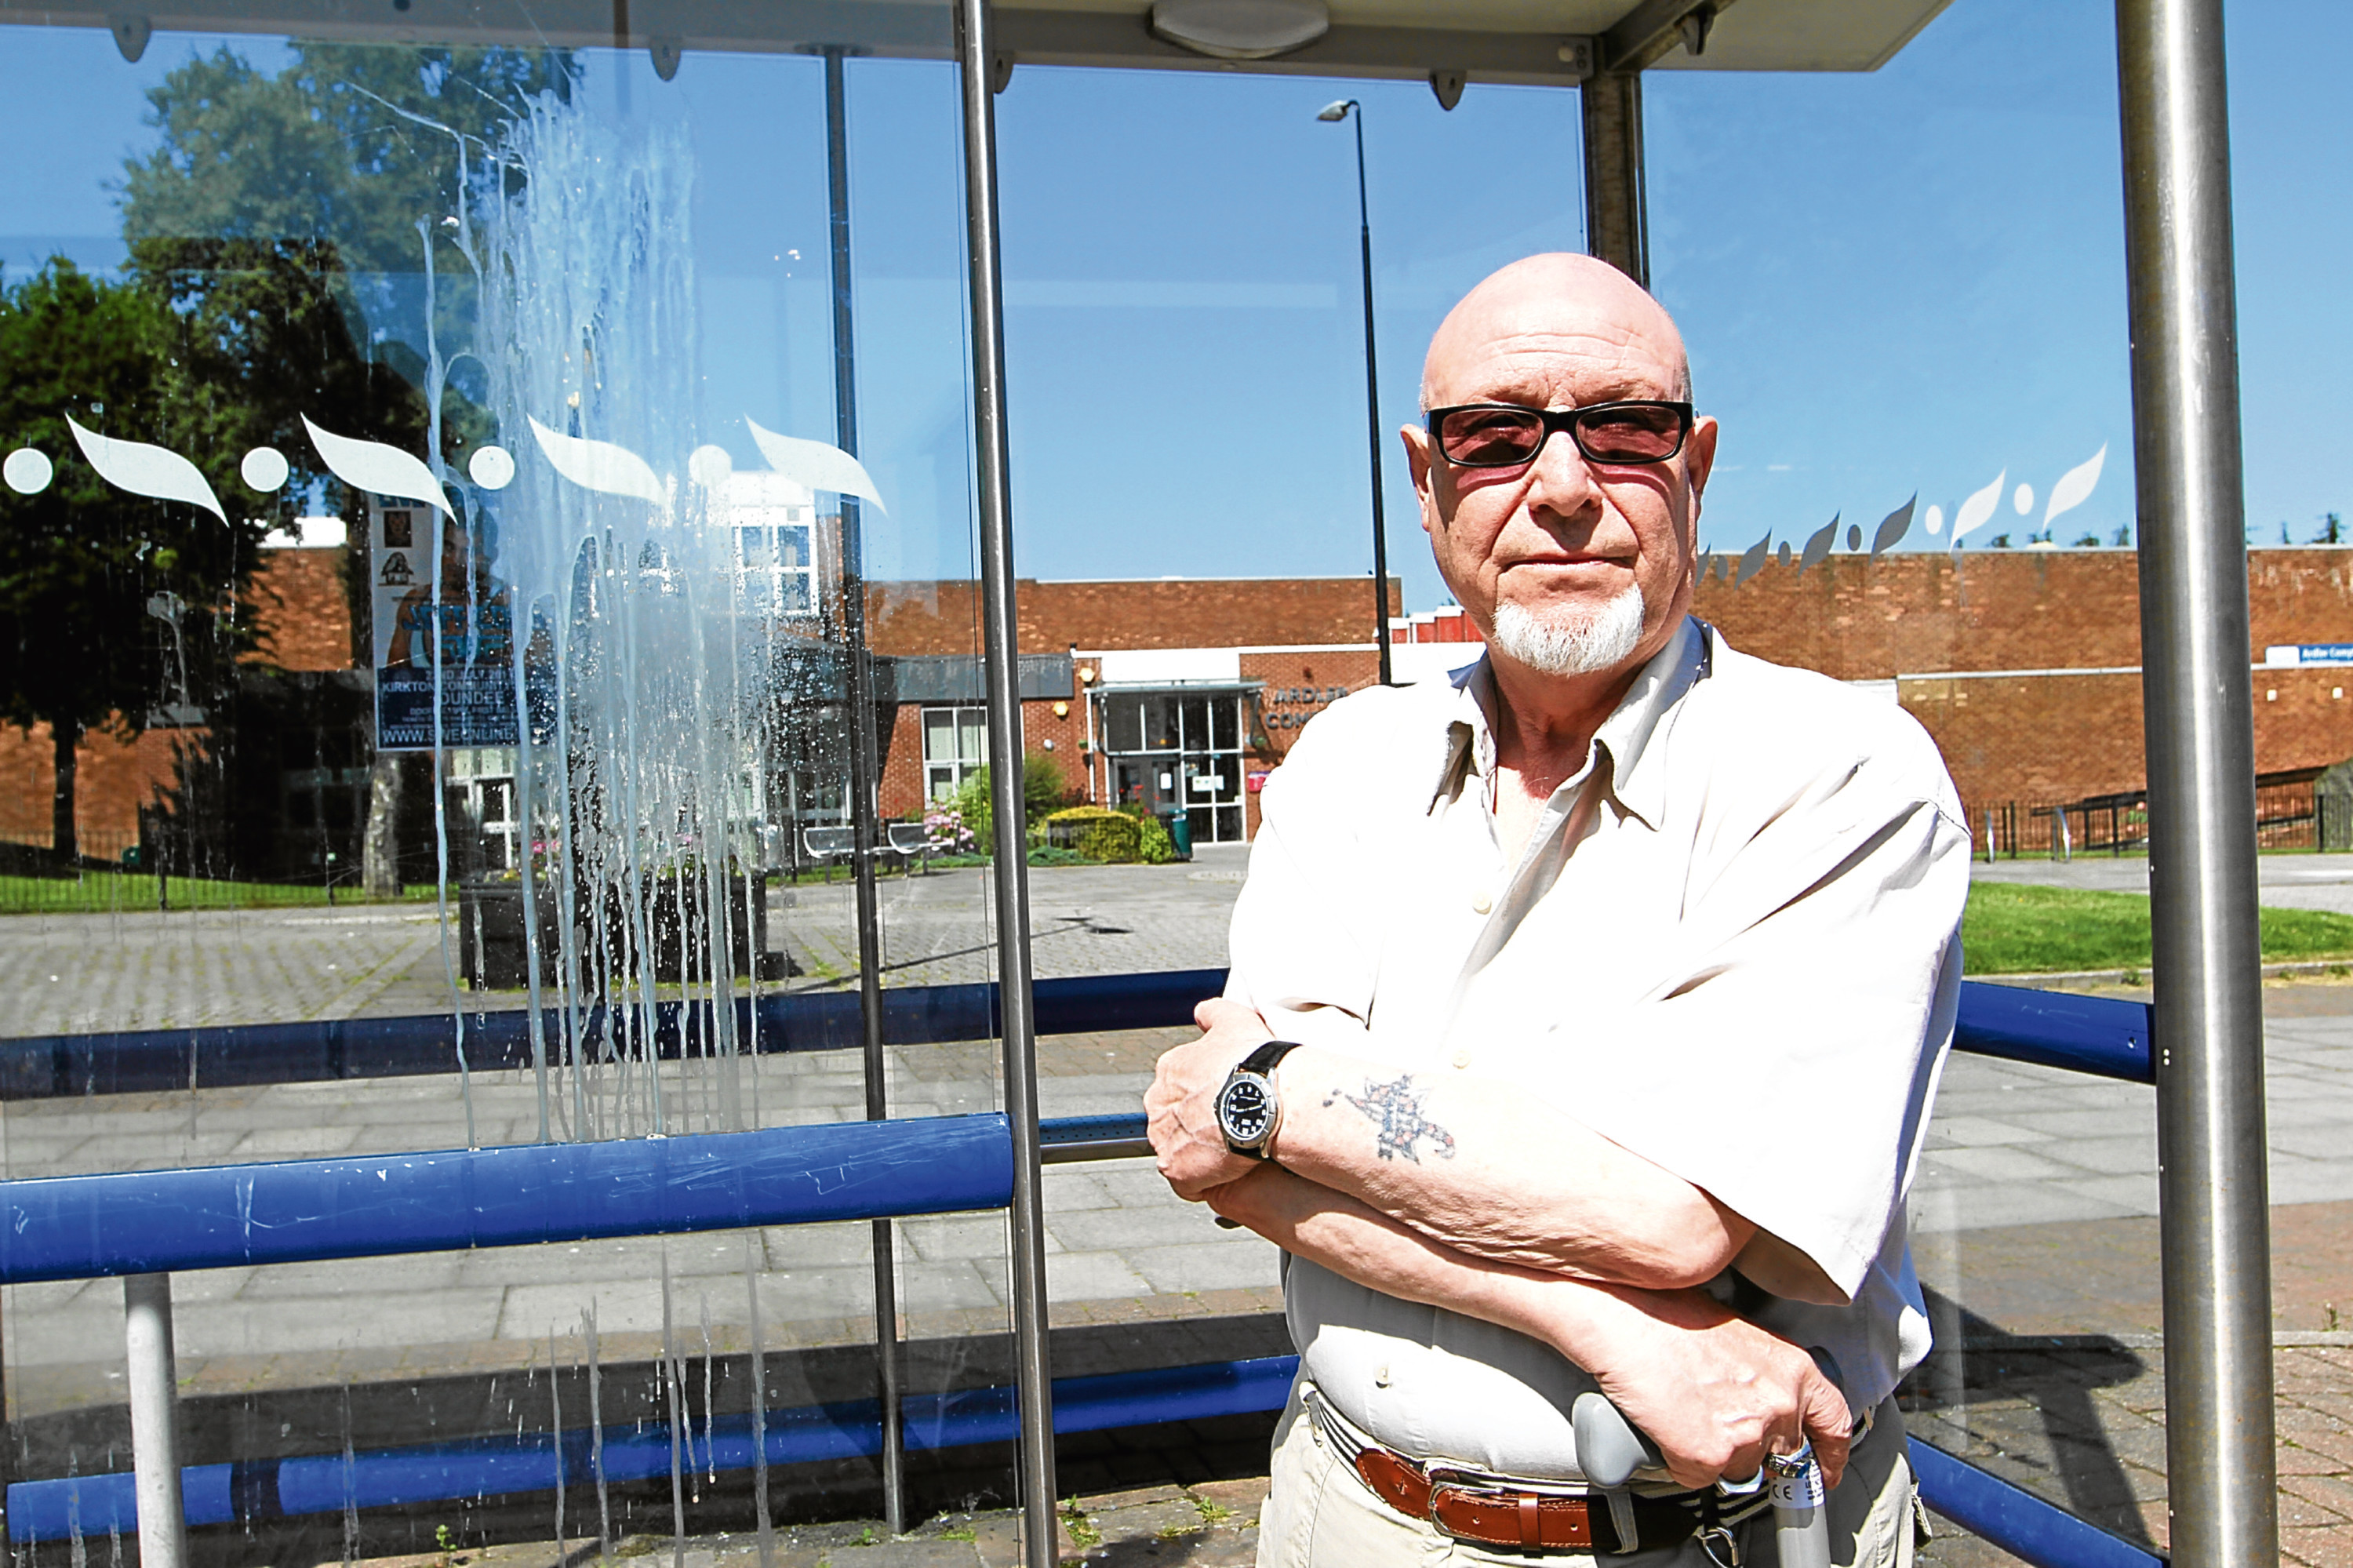 Ardler resident John Bisset called the police over youths who threw stones at homes and paint-bombed a bus shelter.